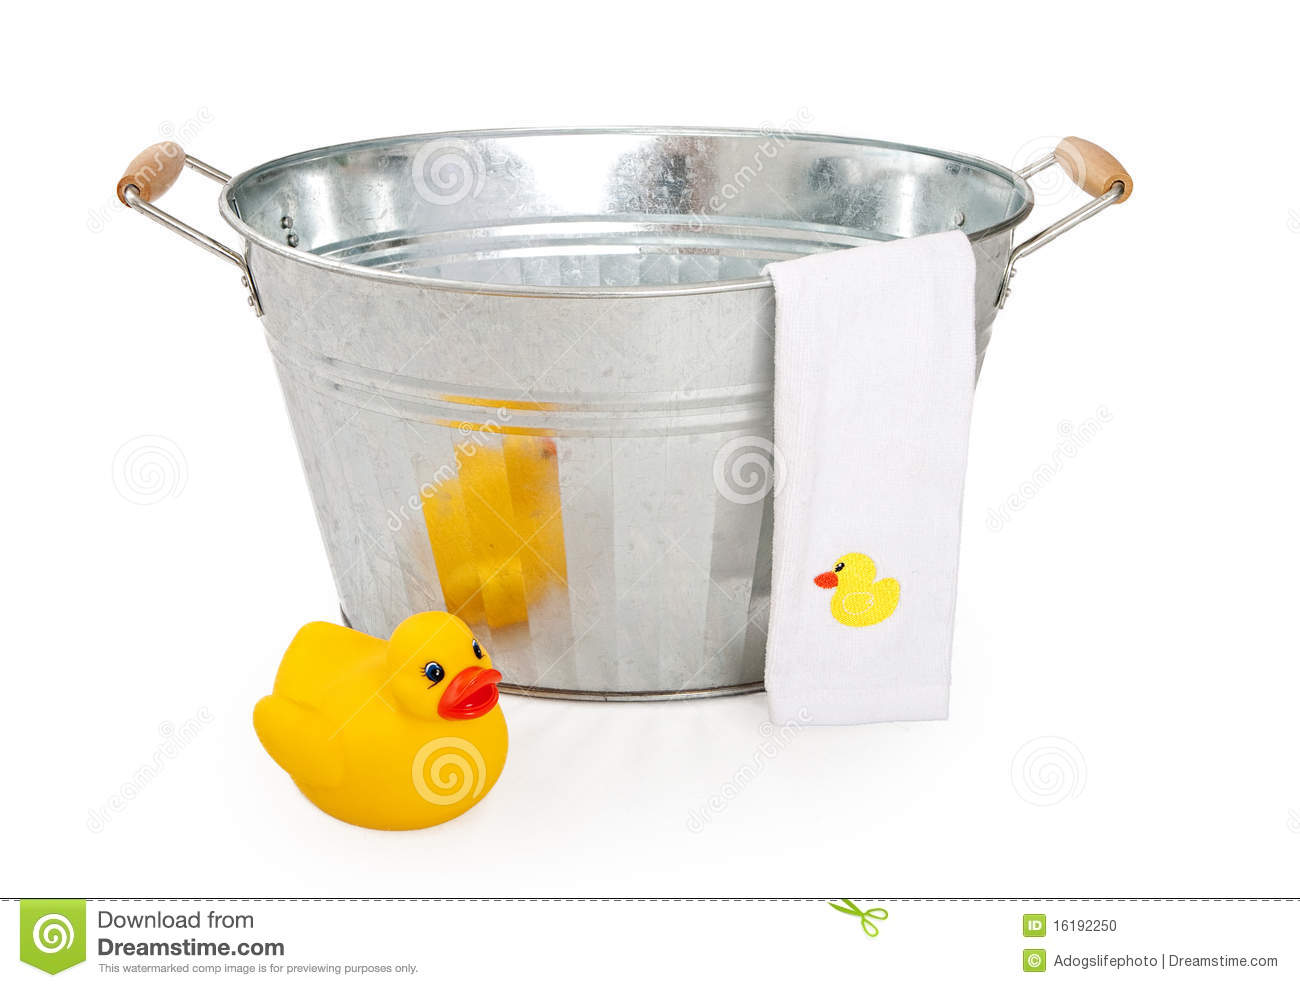 Old Wash Tub With Rubber Duck Stock Photo - Image of antique, rubber ...